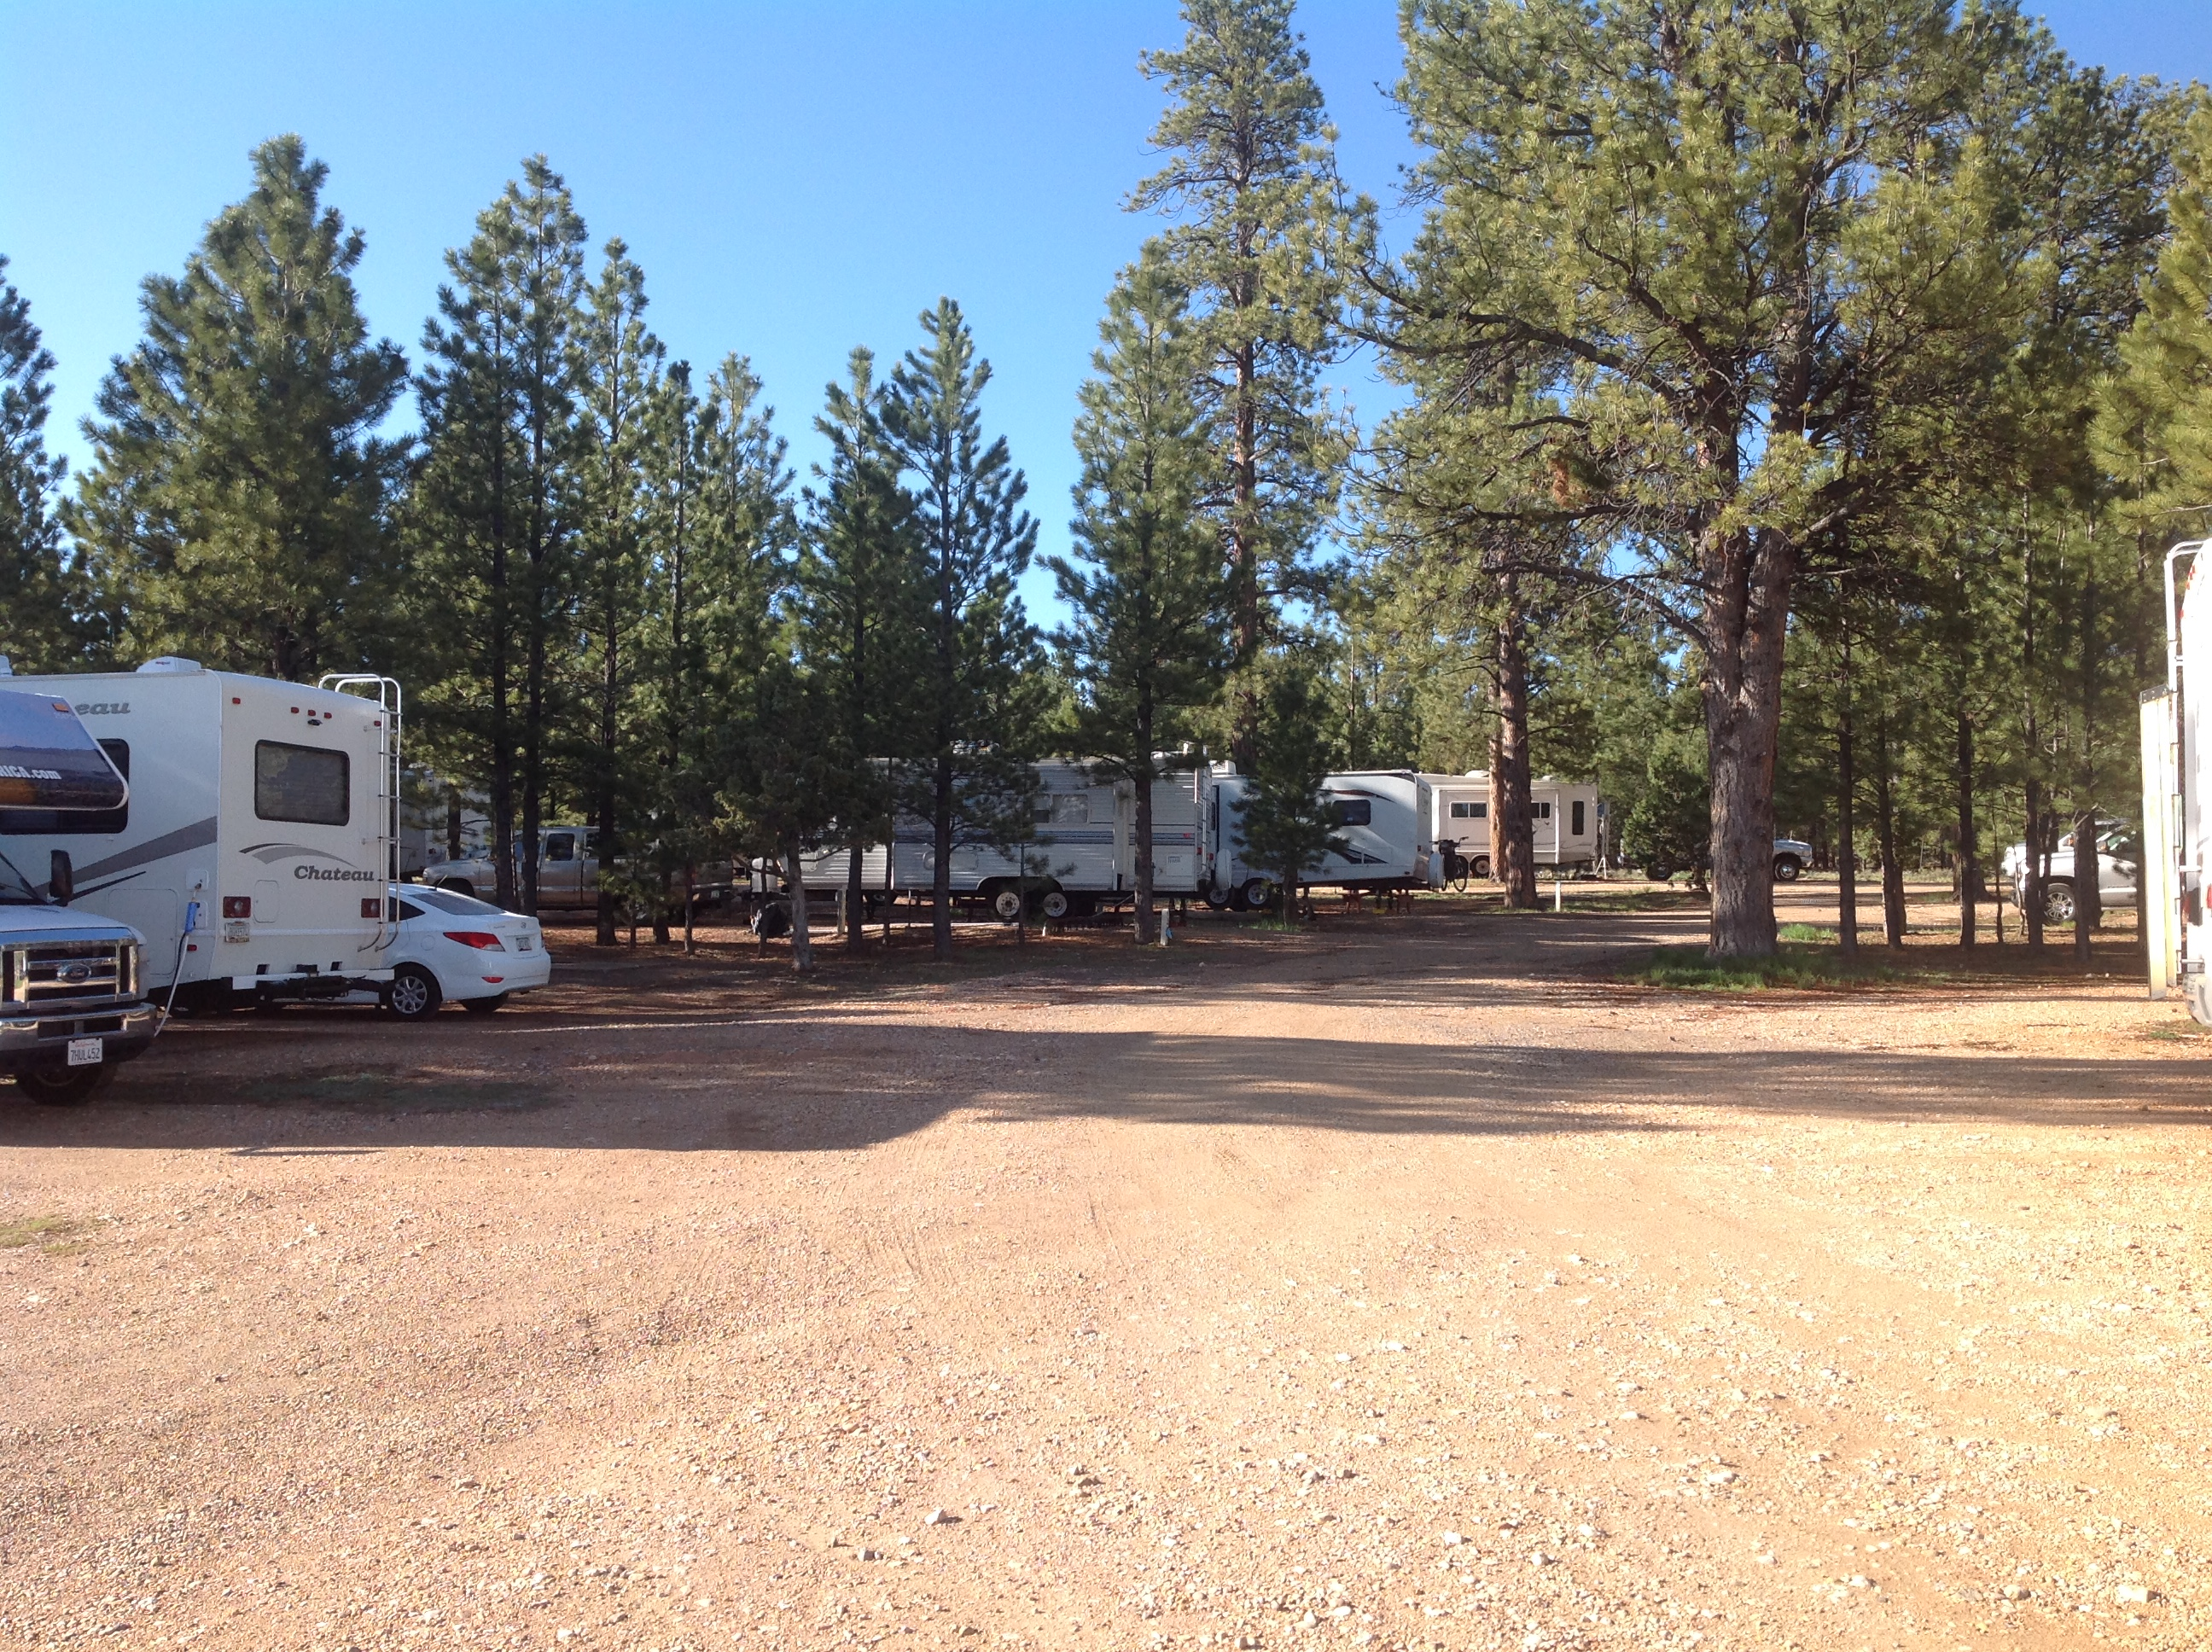 Bryce Canyon Pines RV Park - RV sites